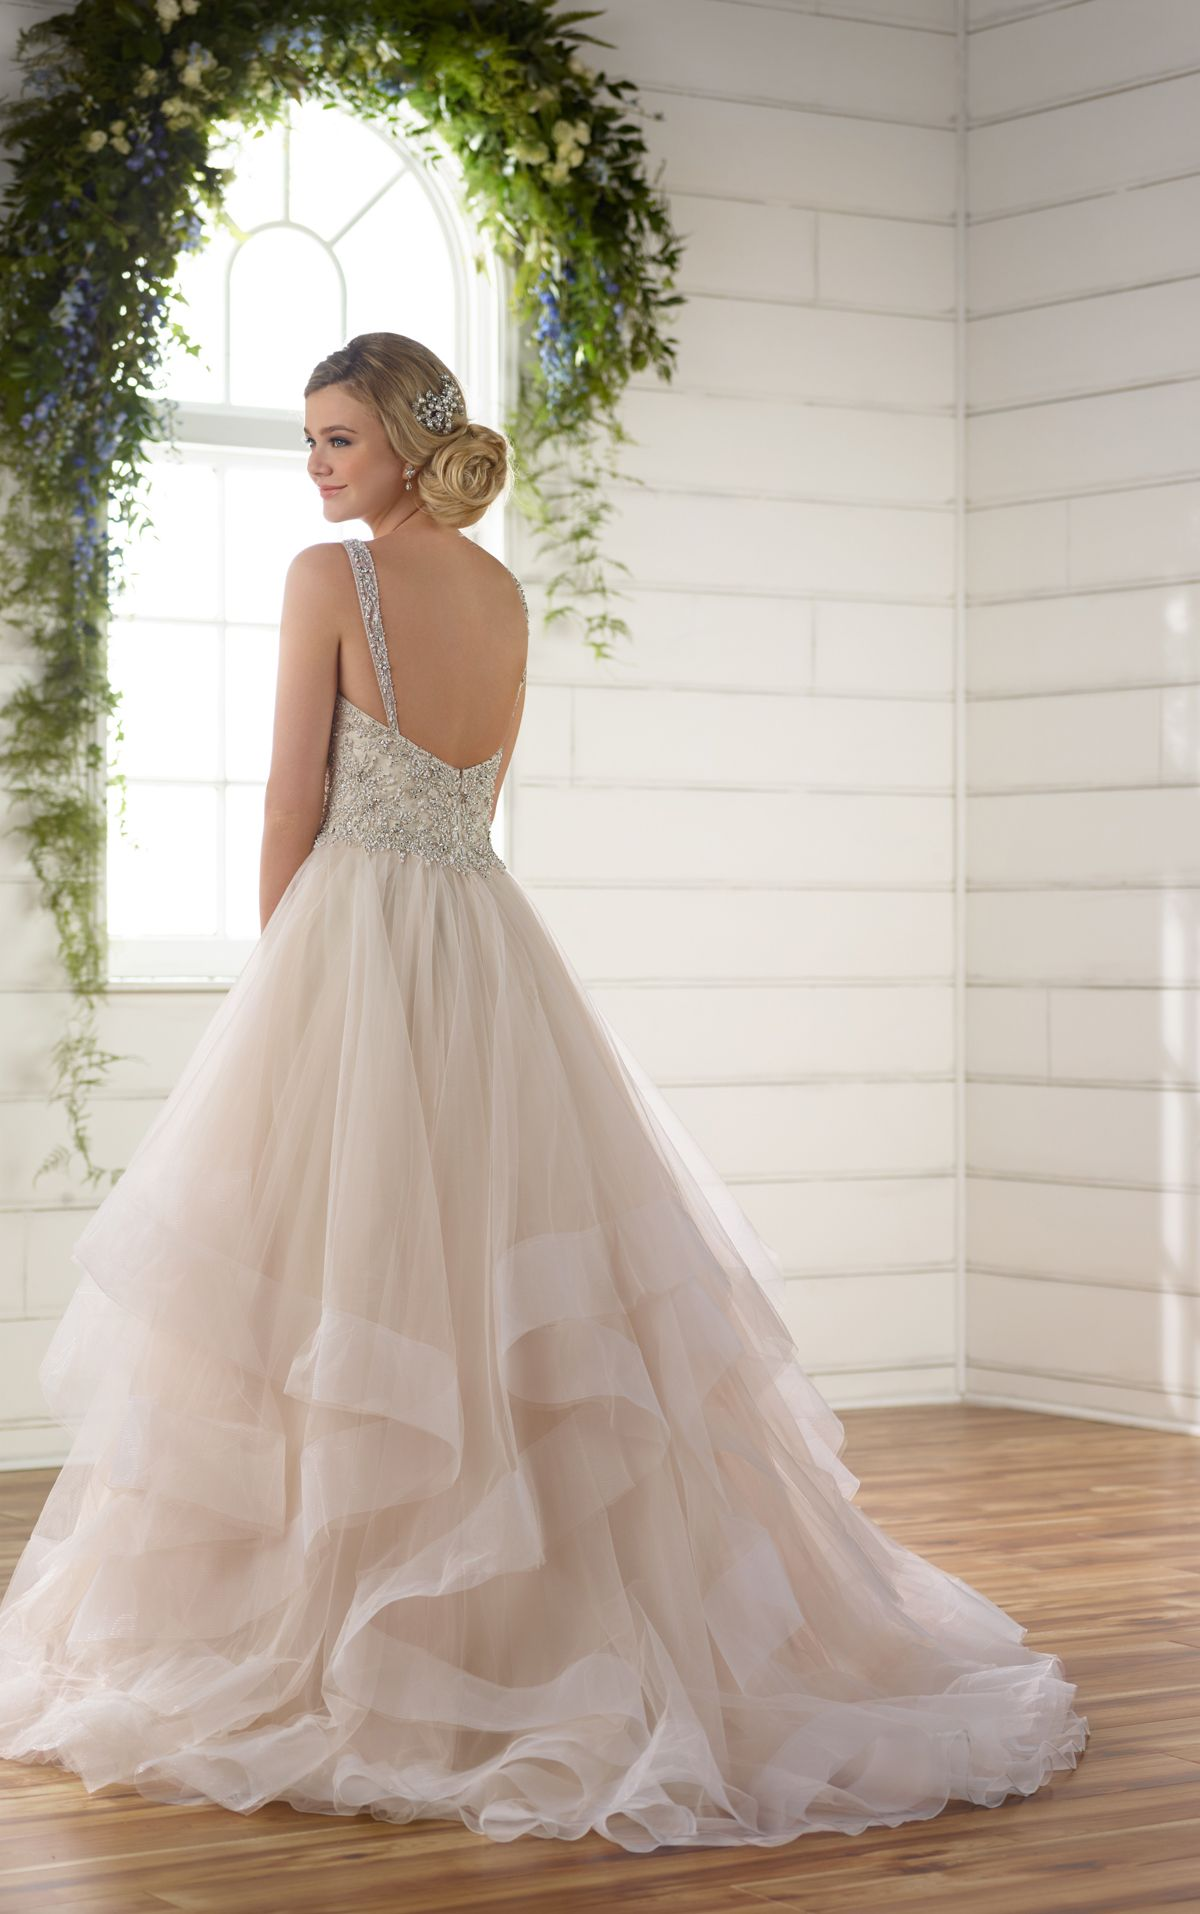 Plus Size Beaded Strap Wedding Dress With Full Textured Skirt In